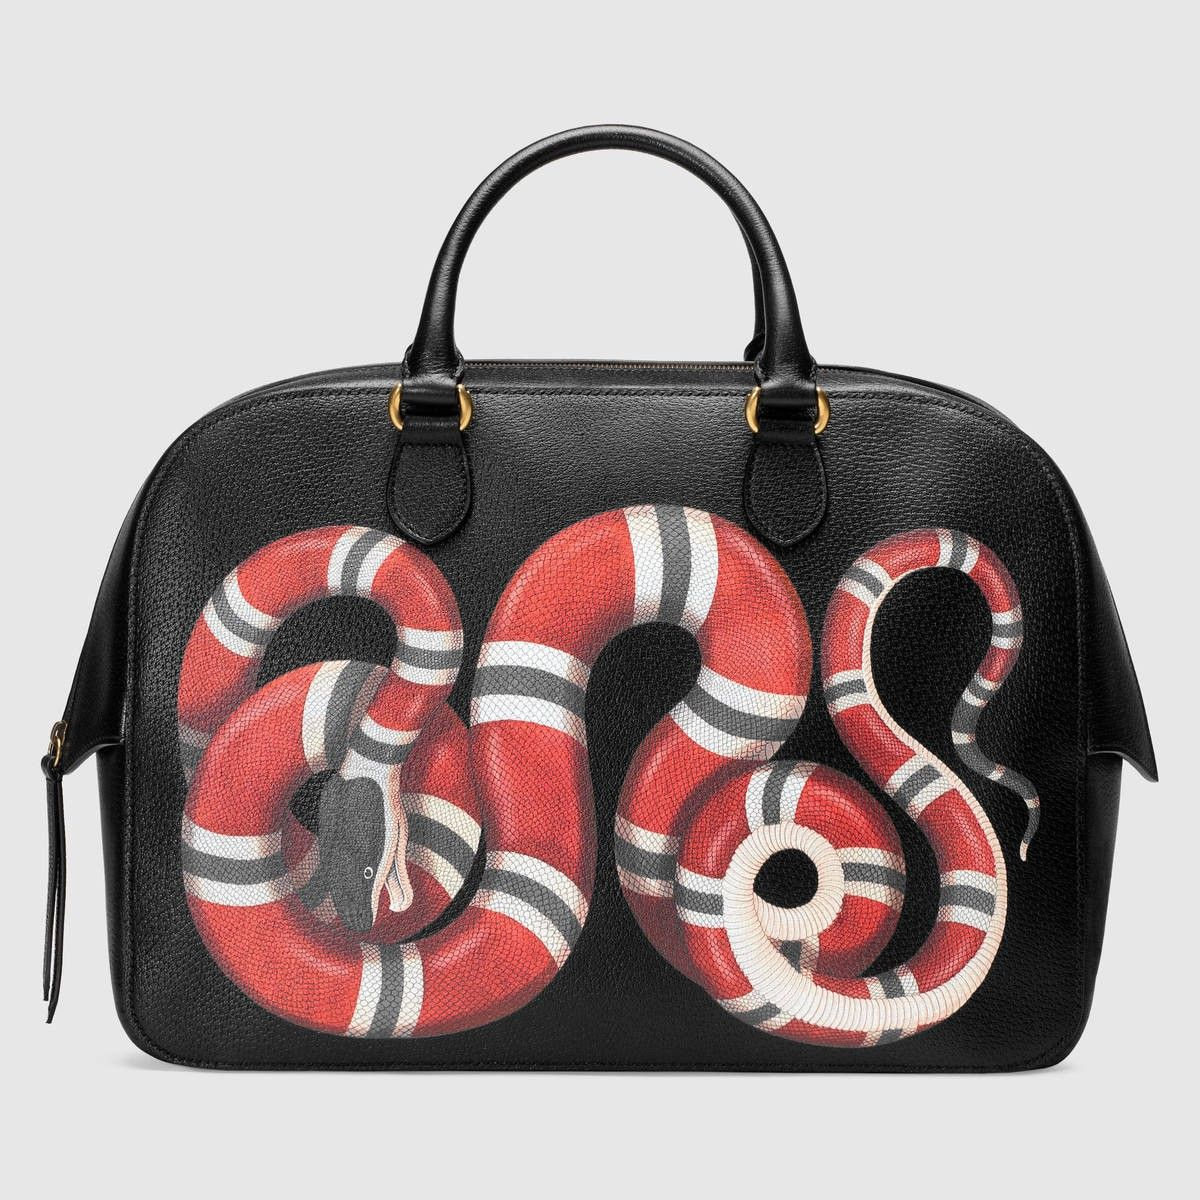 615854a38a8 GUCCI Snake Print Leather Duffle - Black Leather.  gucci  bags  hand bags   suede  lining